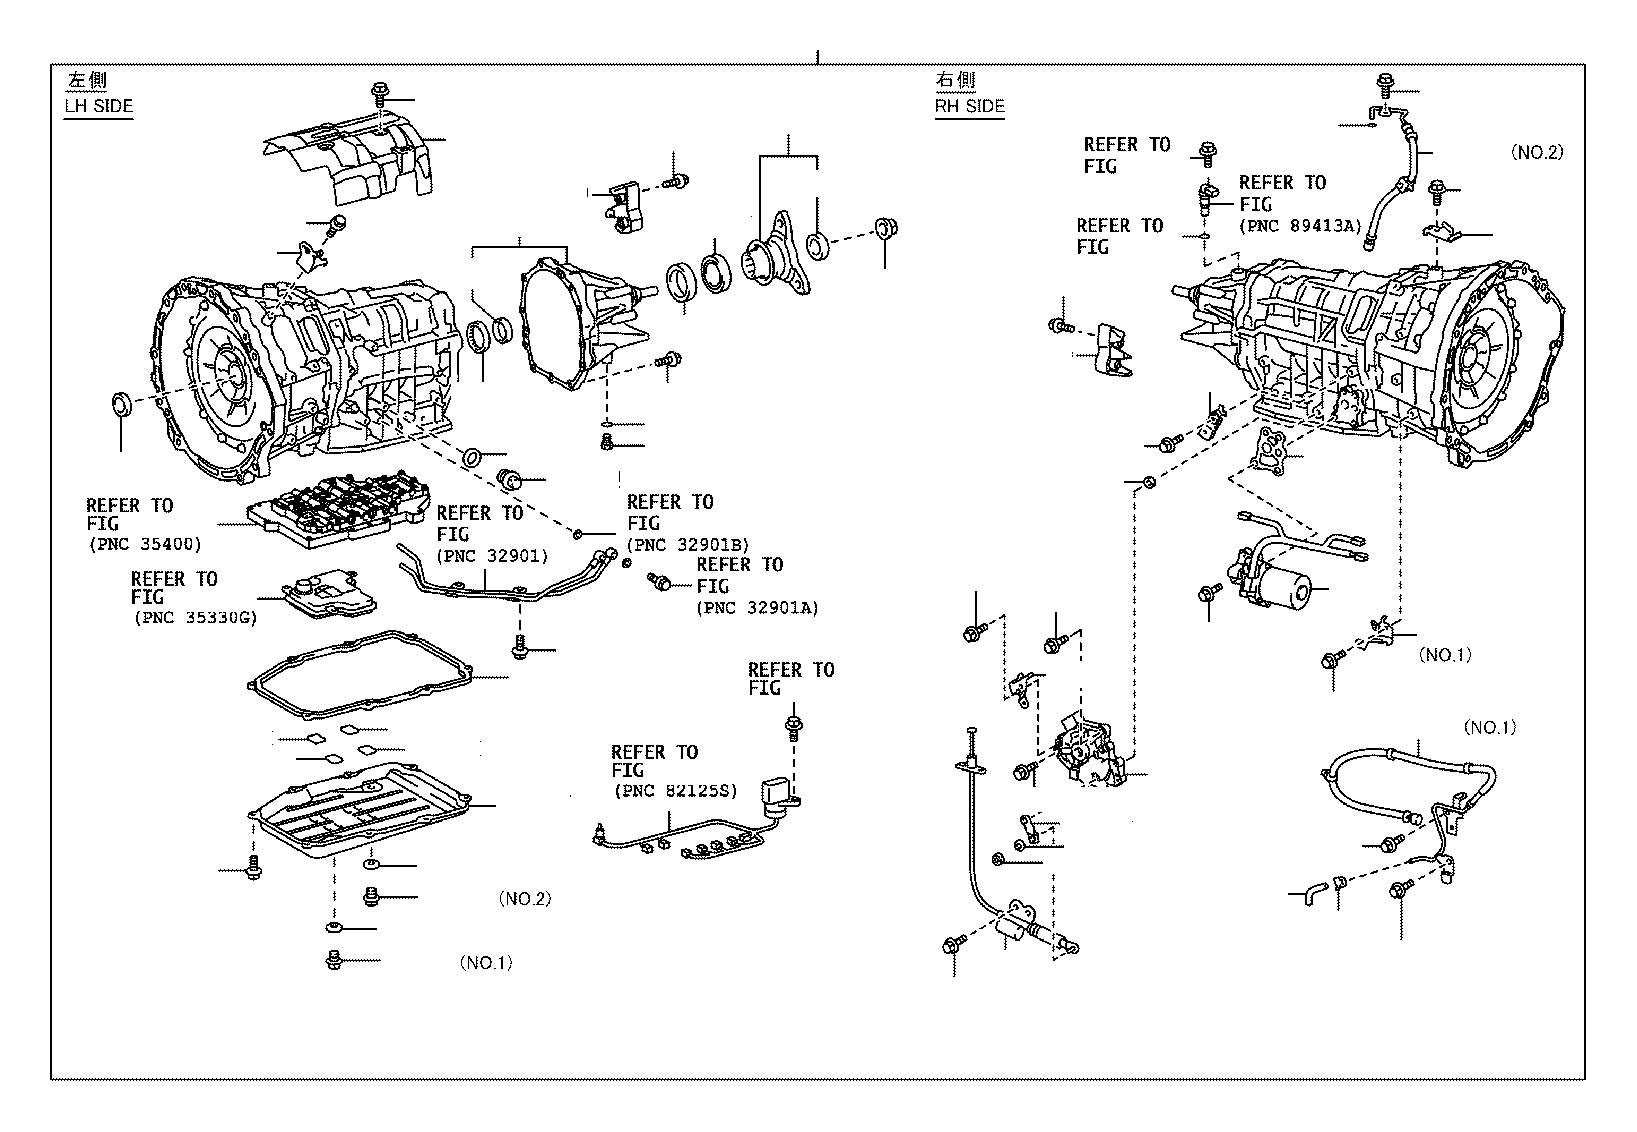 Toyota Previa Parts Diagram